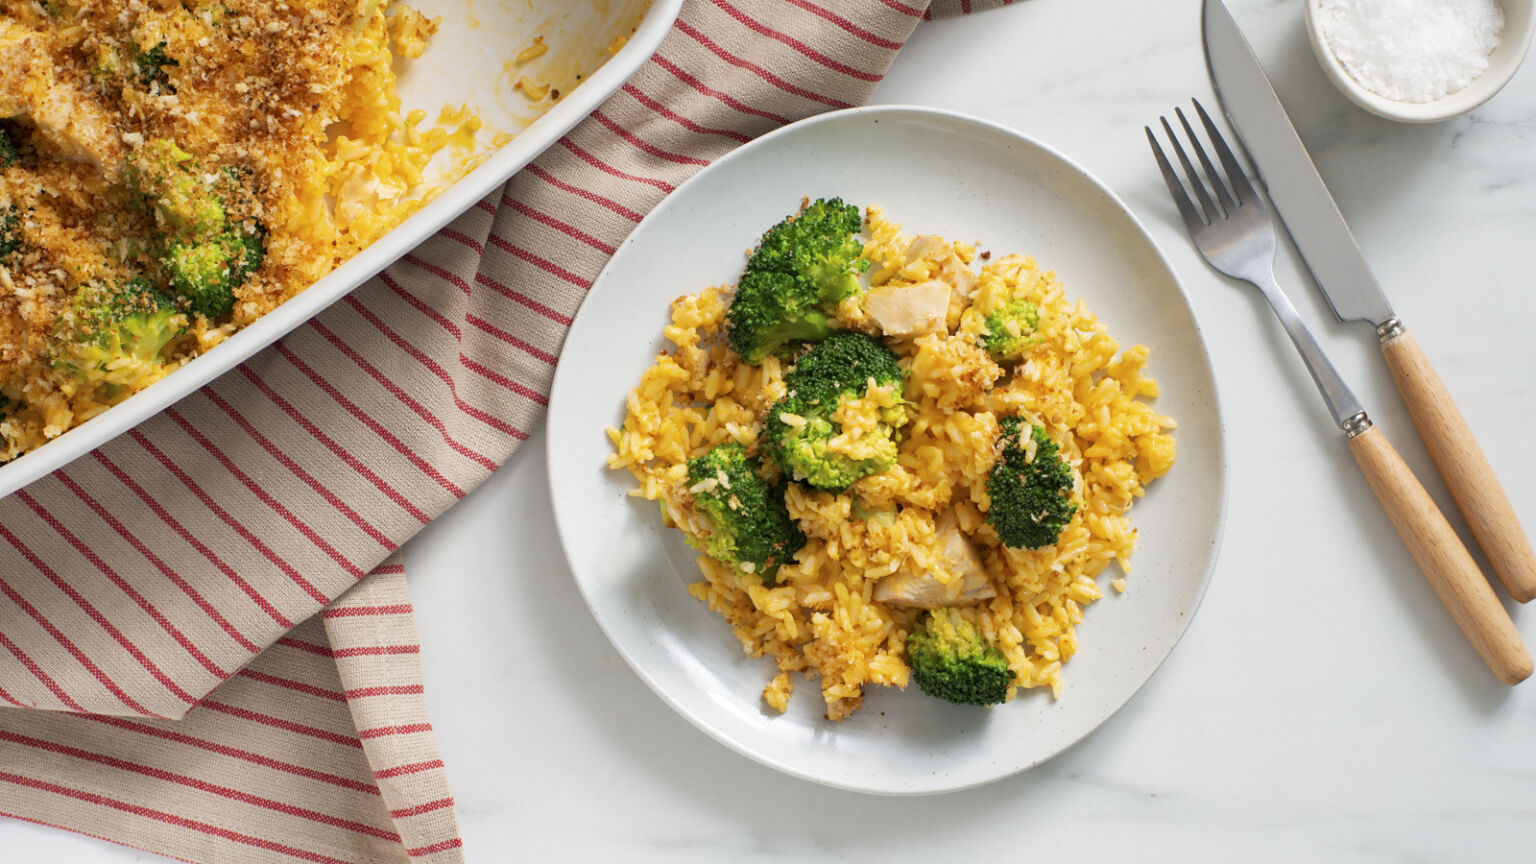 Home-Baked Cheesy Chicken and Broccoli with Rice